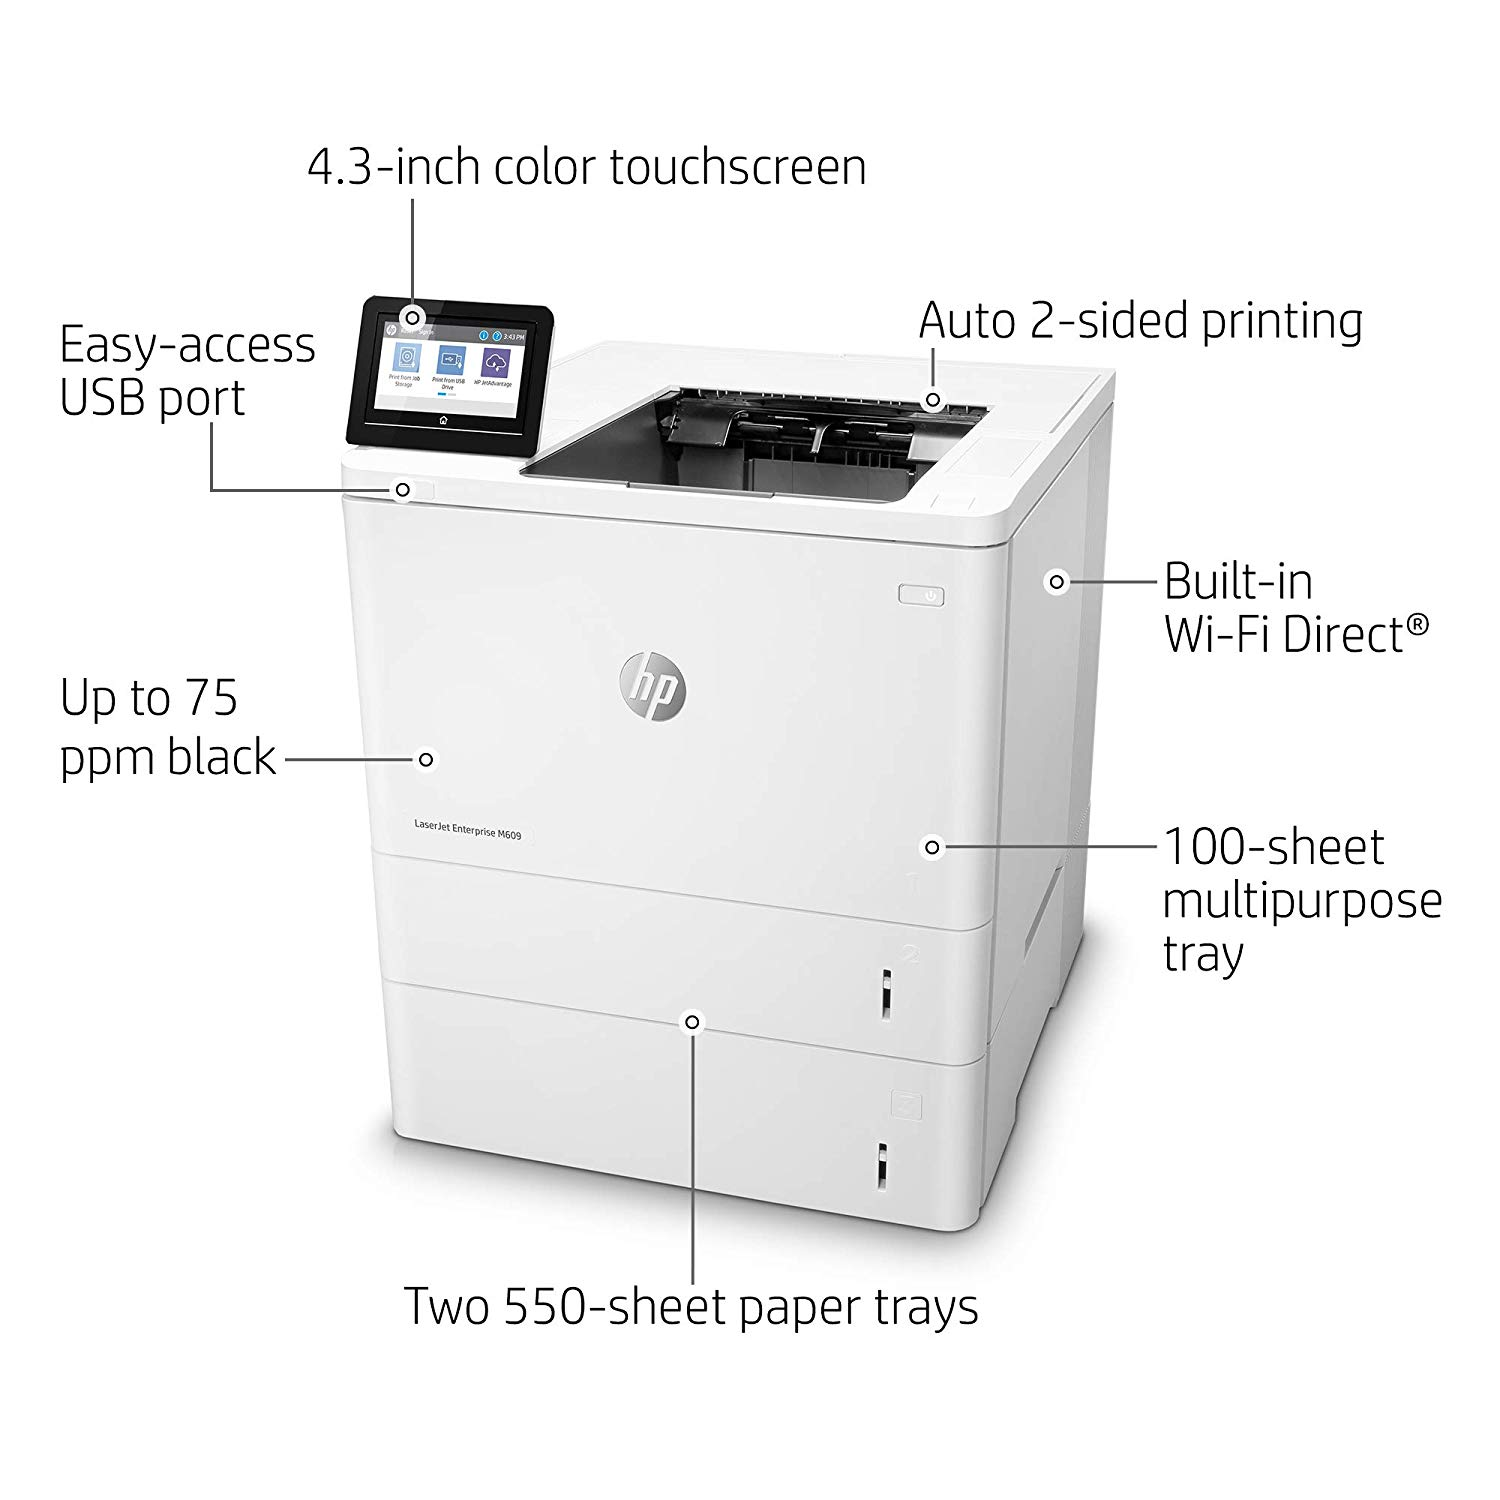 Product | HP LaserJet Enterprise M609x - printer - monochrome - laser